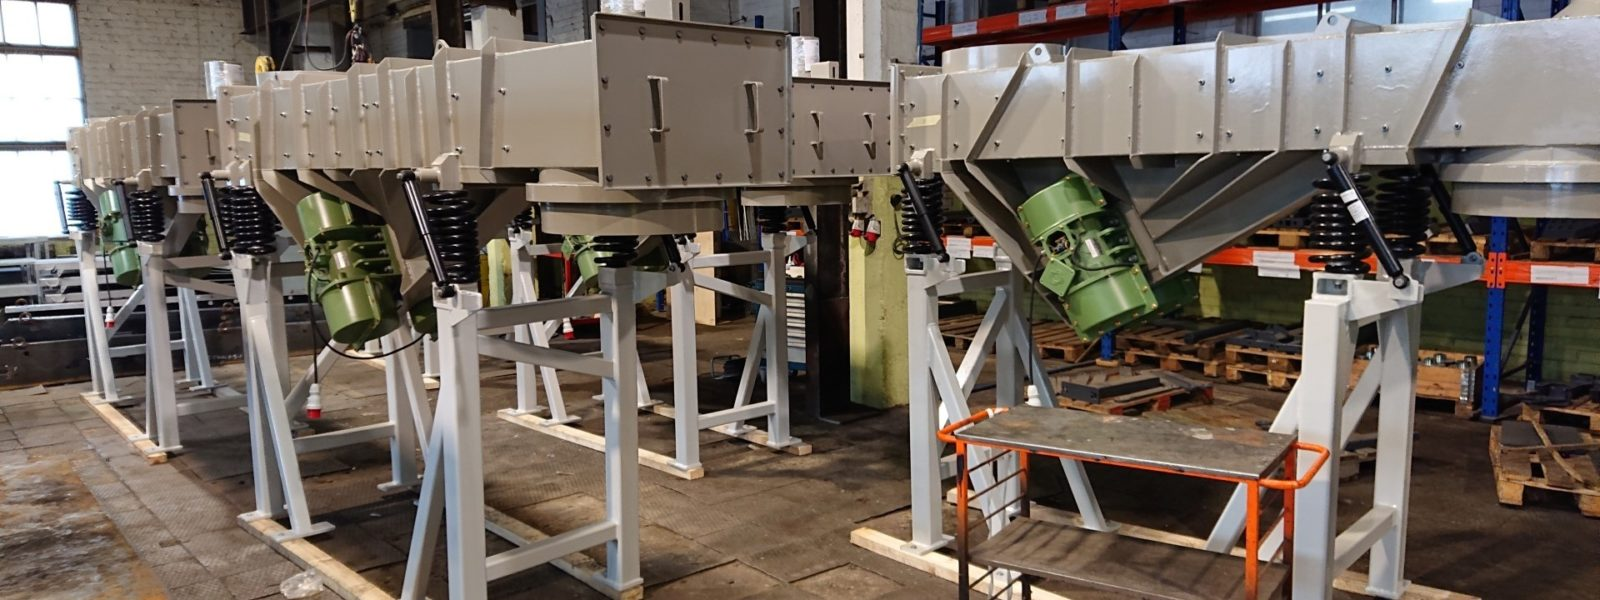 Vibration feeders and conveyors